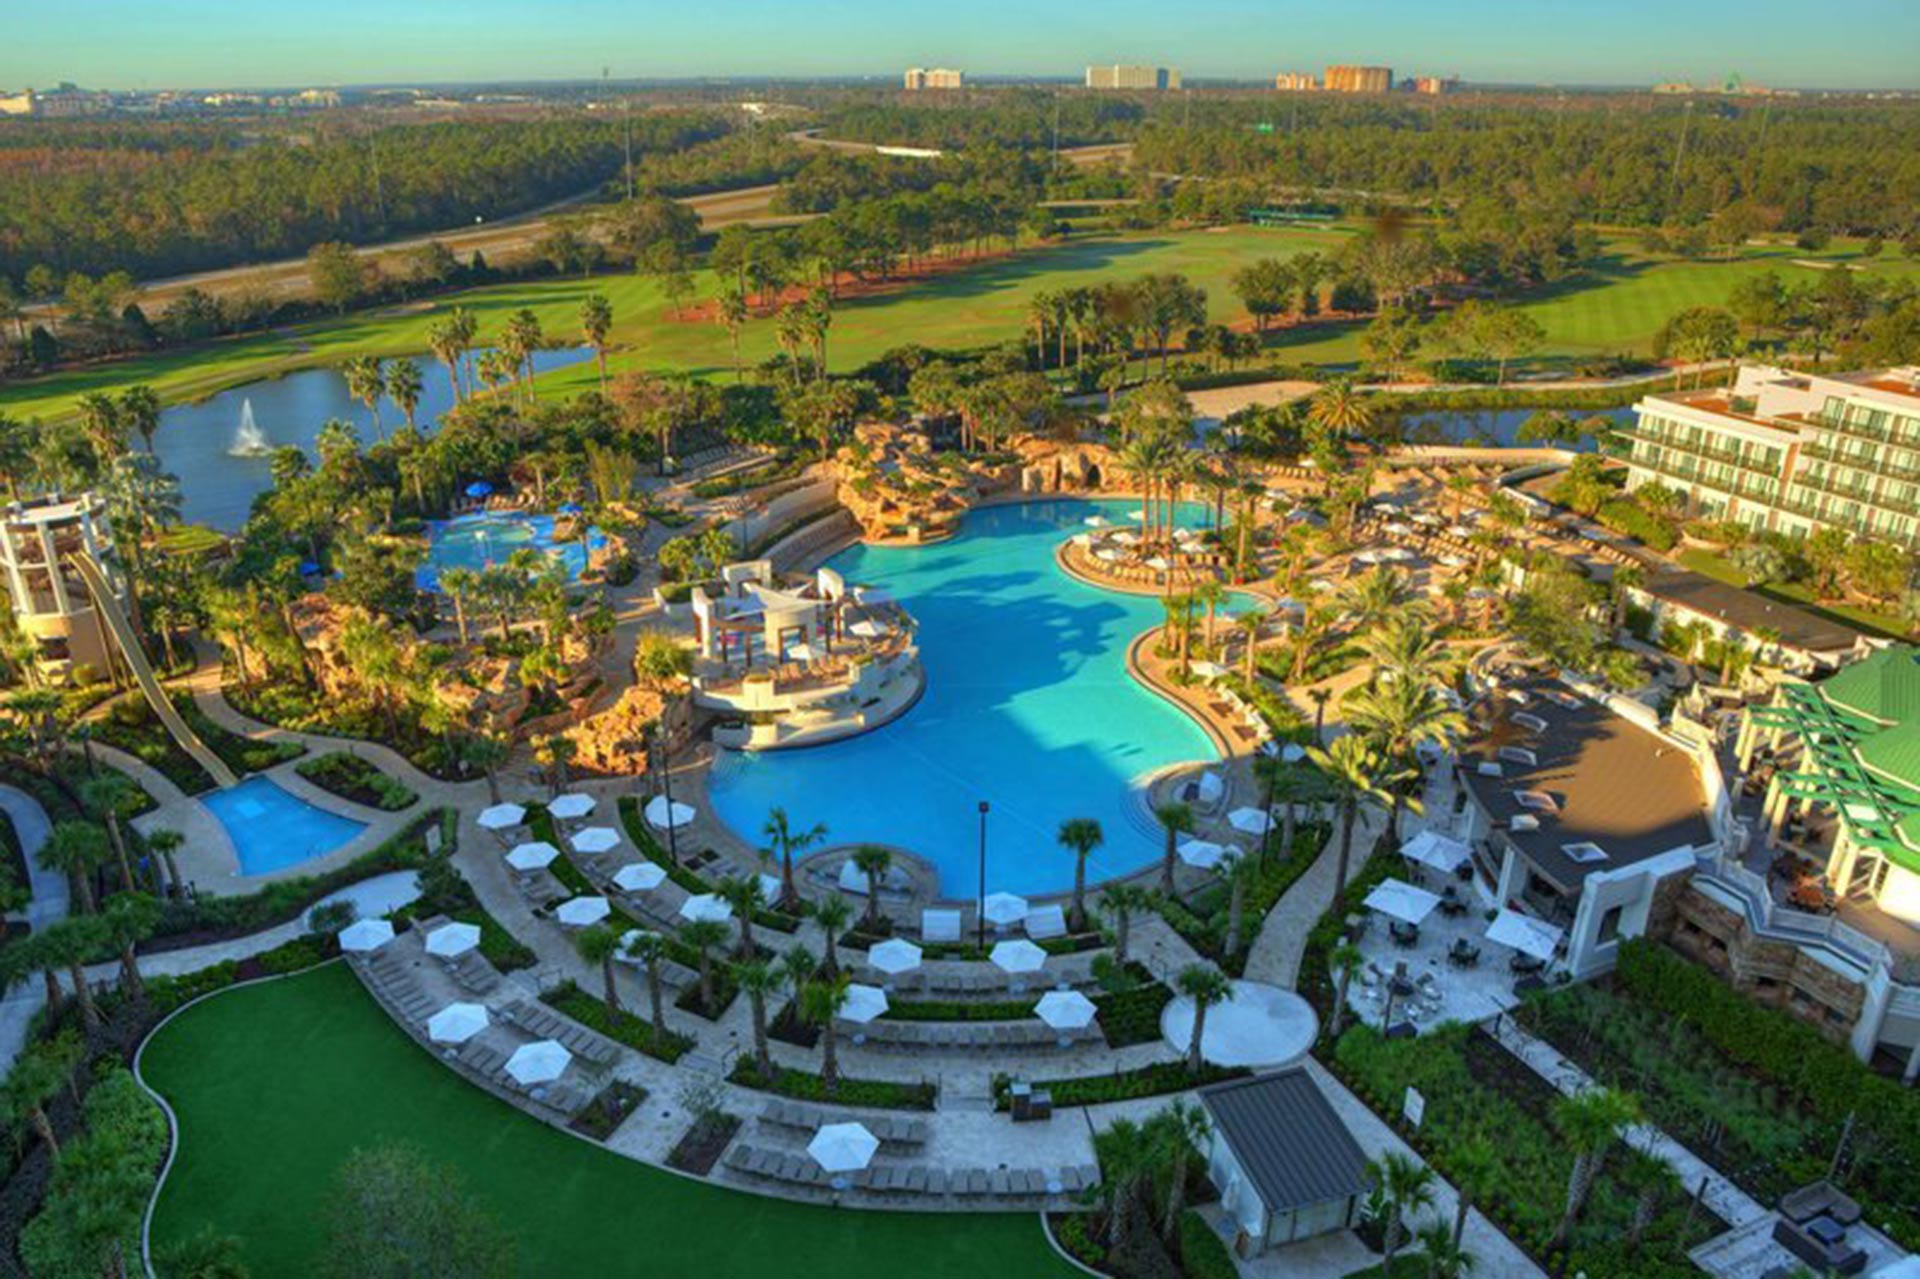 Orlando World Center Marriott Resort in Florida